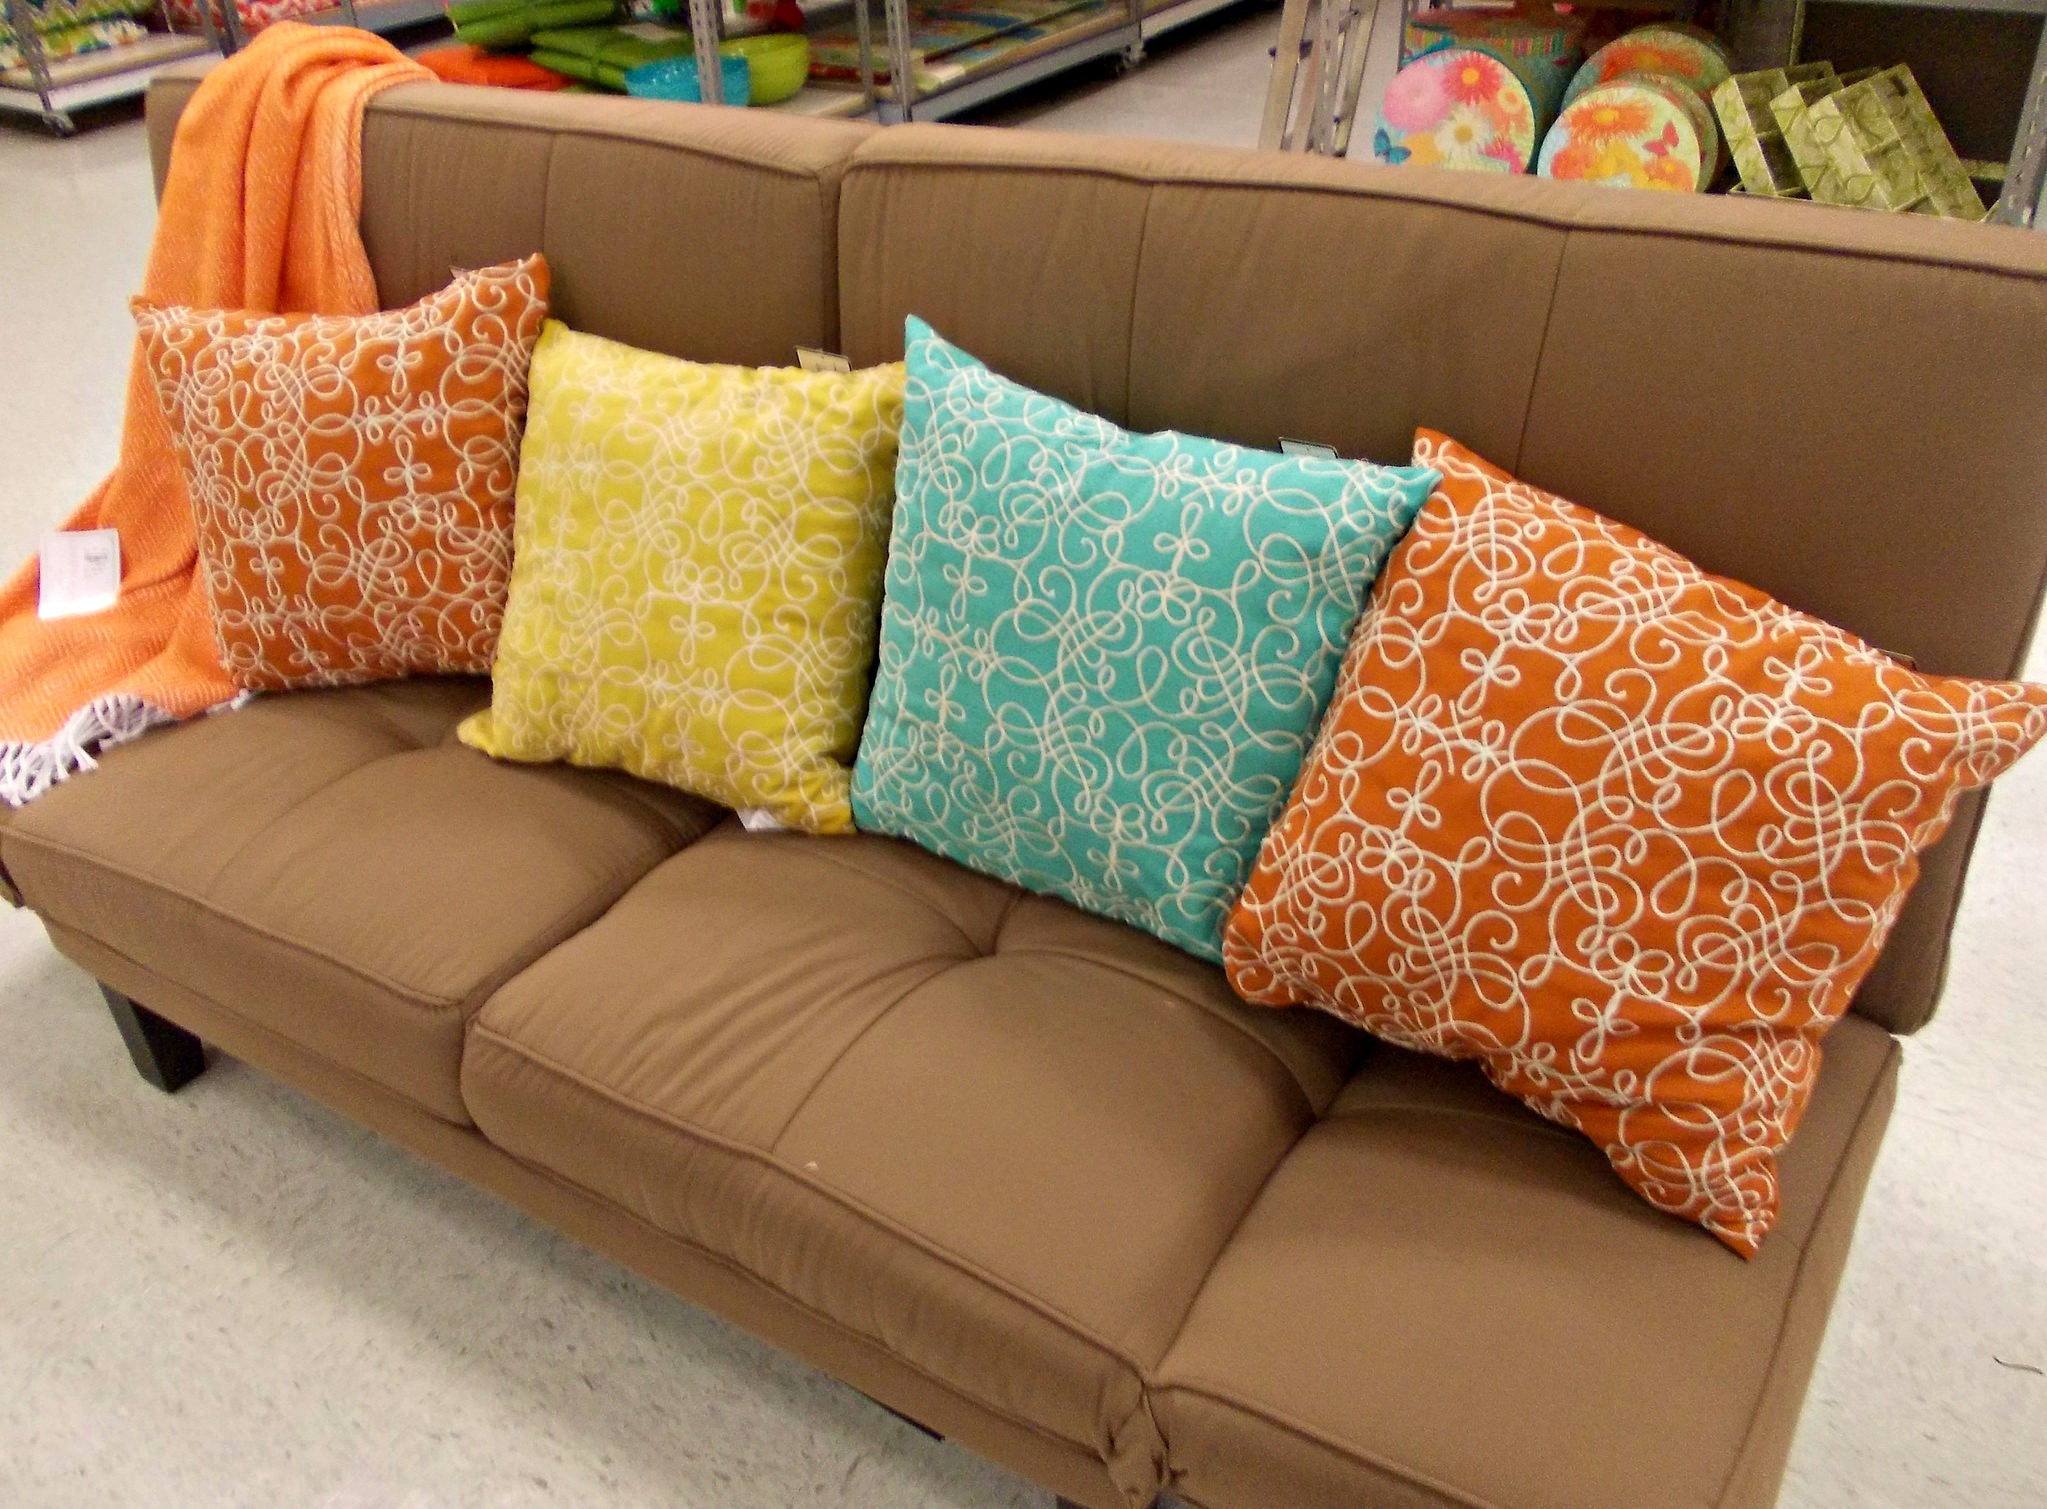 Lovely More Outdoor Space Color! Tuesday Morning Carries A Huge Selection Of Patio  Furnishing, Including Pillows.